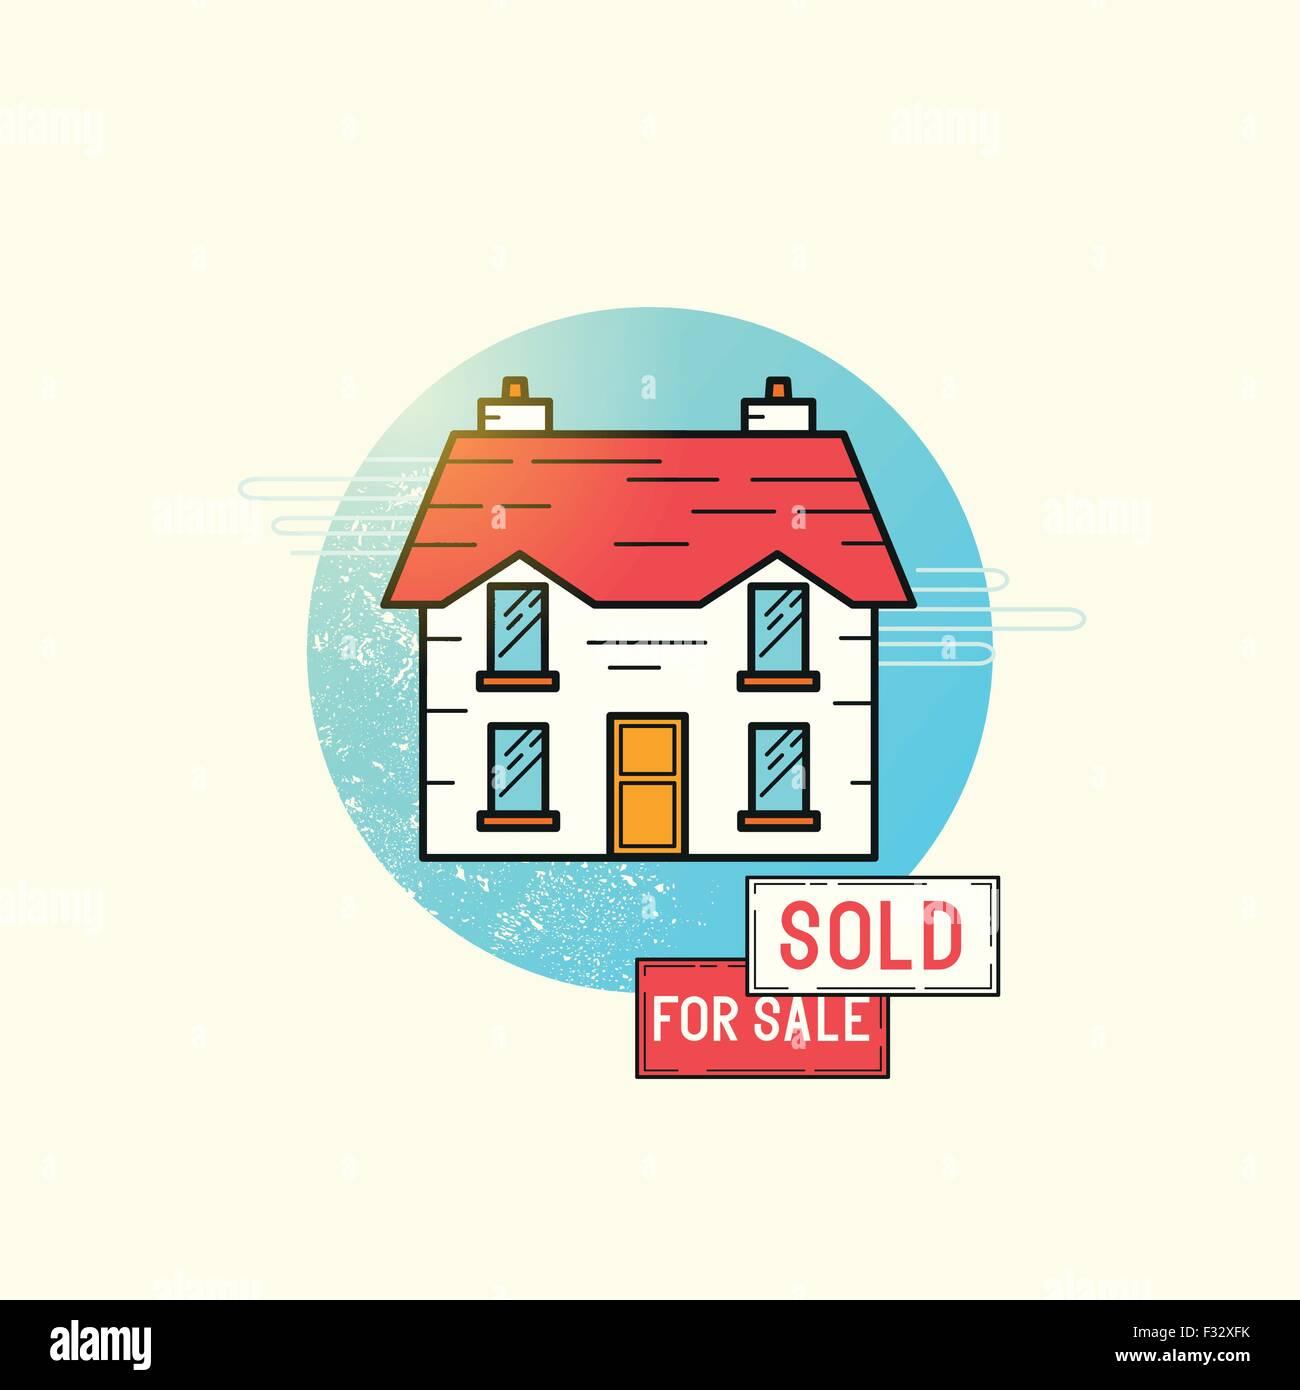 Moving Home Icon Vector. A detached house with for sale and sold sign posts. vector illustration - Stock Vector